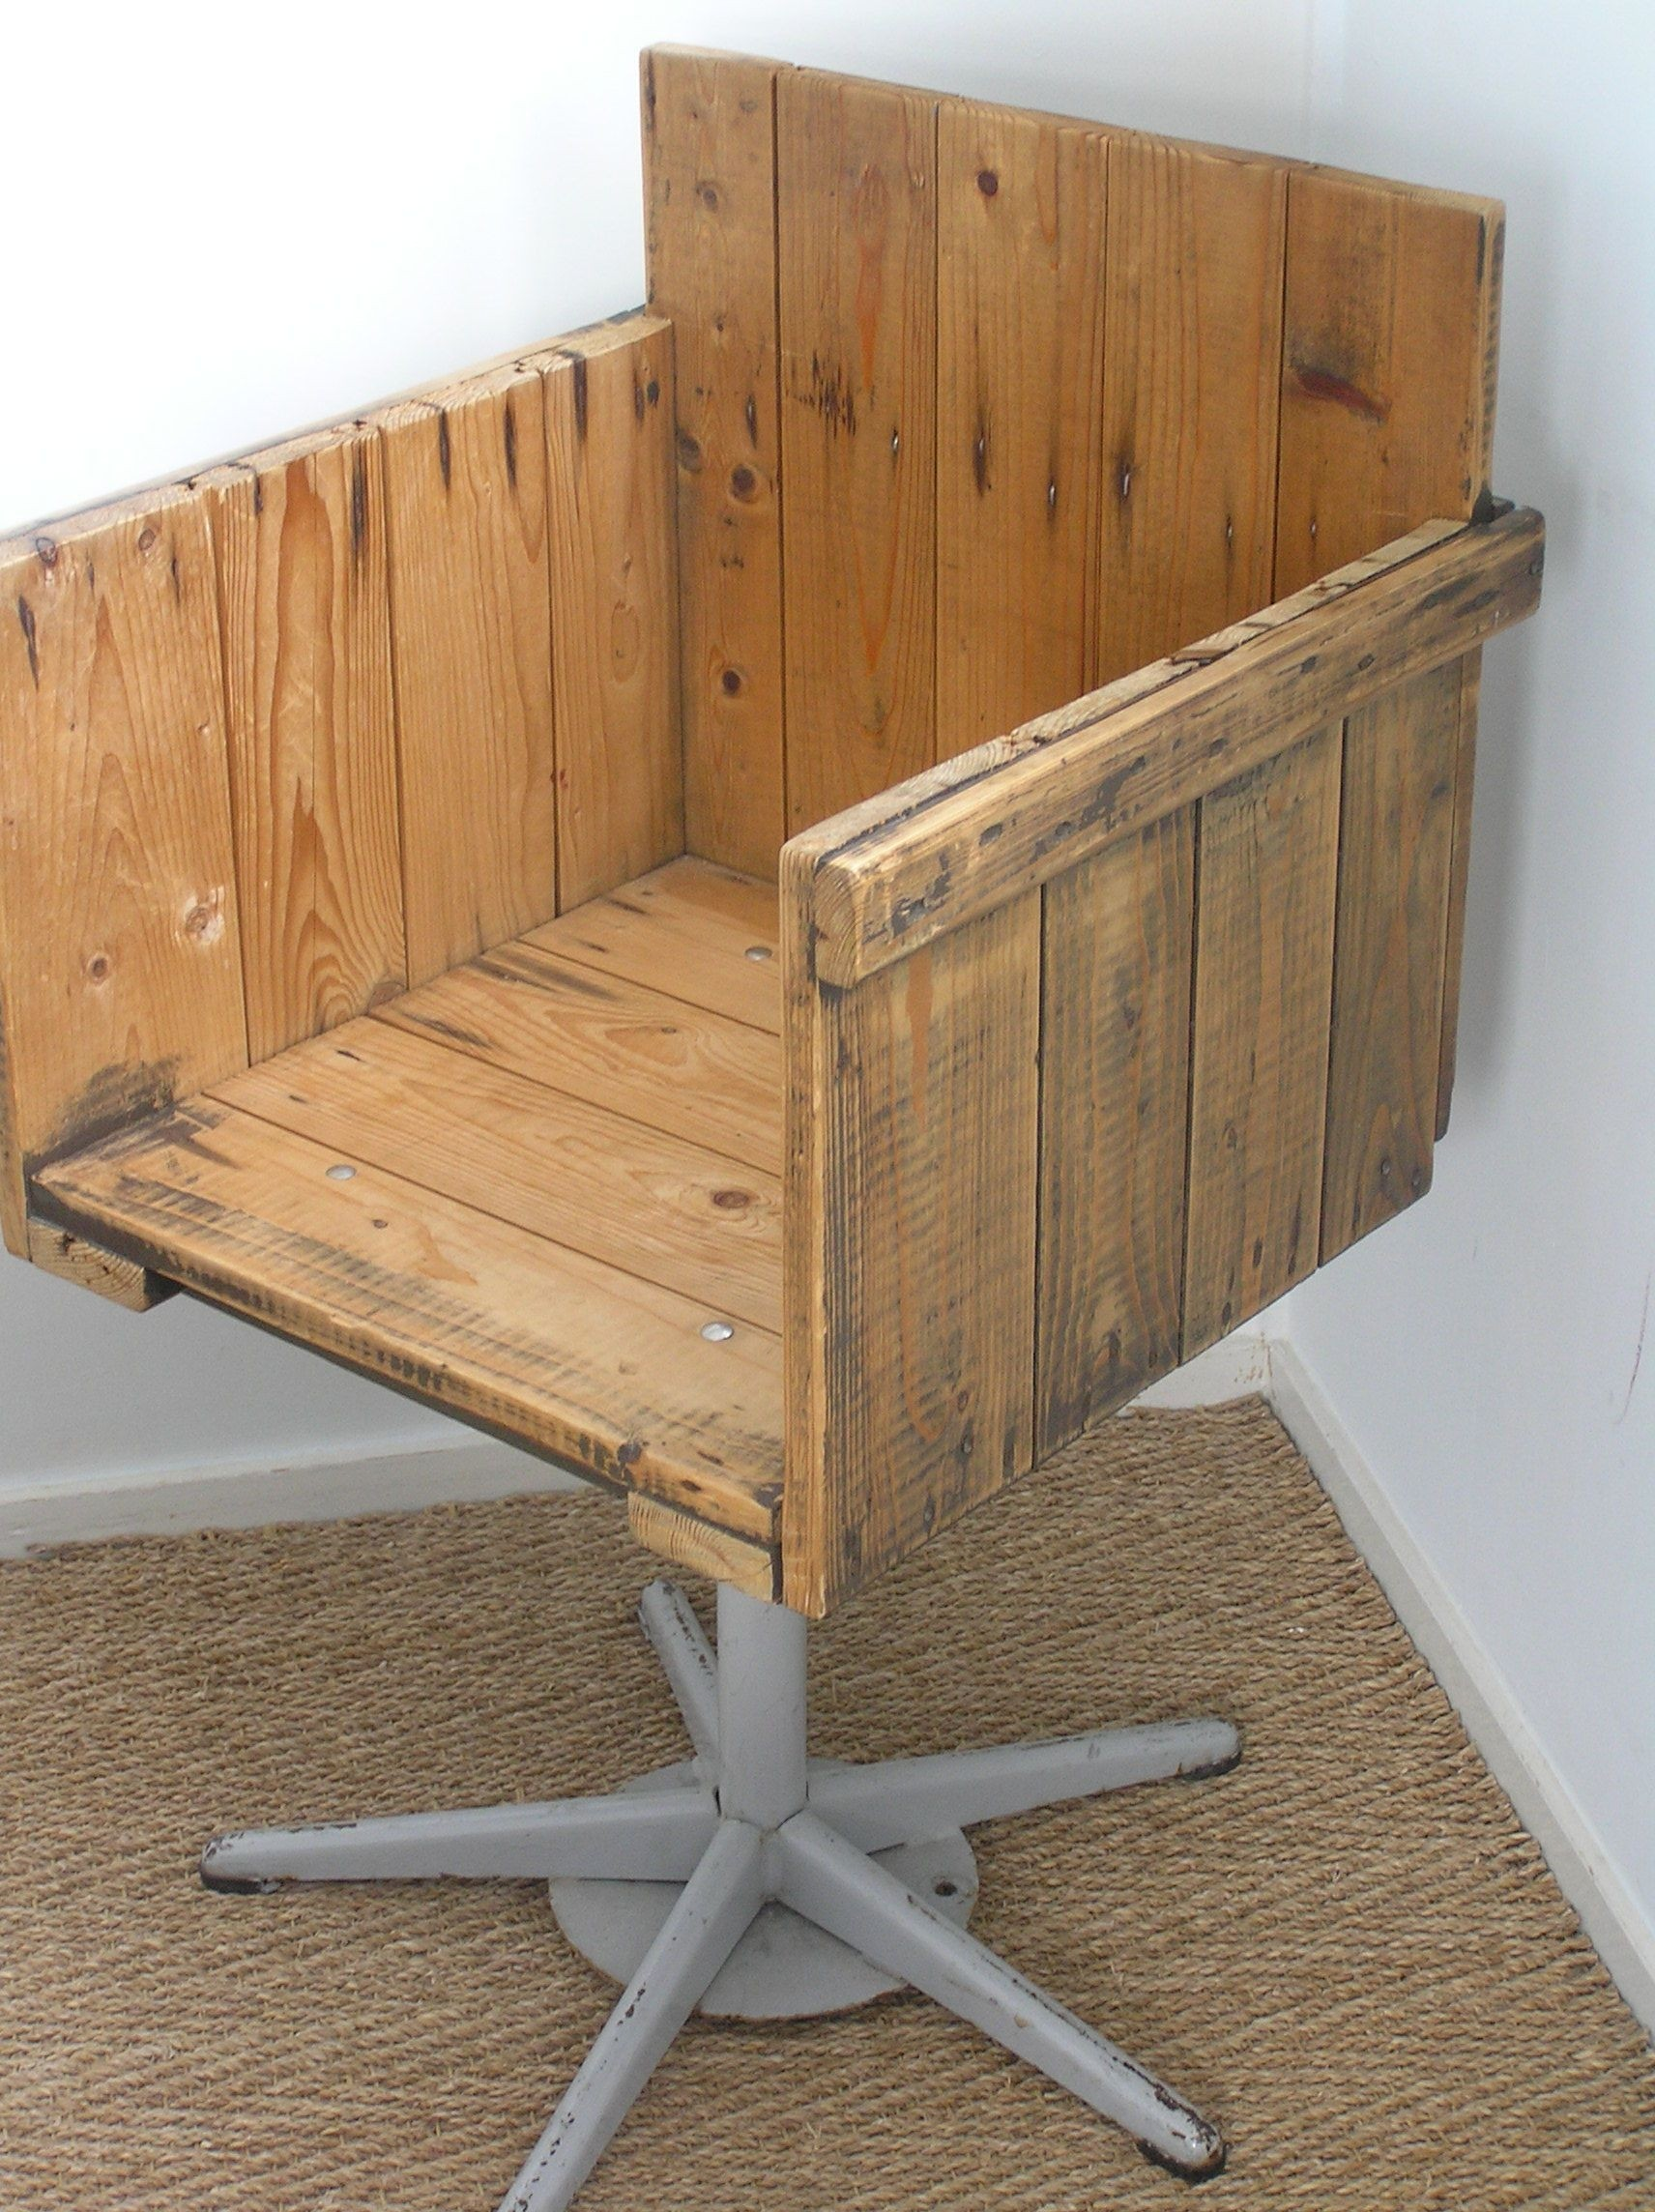 Vintage wooden office chair Swivel Vintage Wooden Office Chair Foter Wooden Swivel Office Chair Ideas On Foter